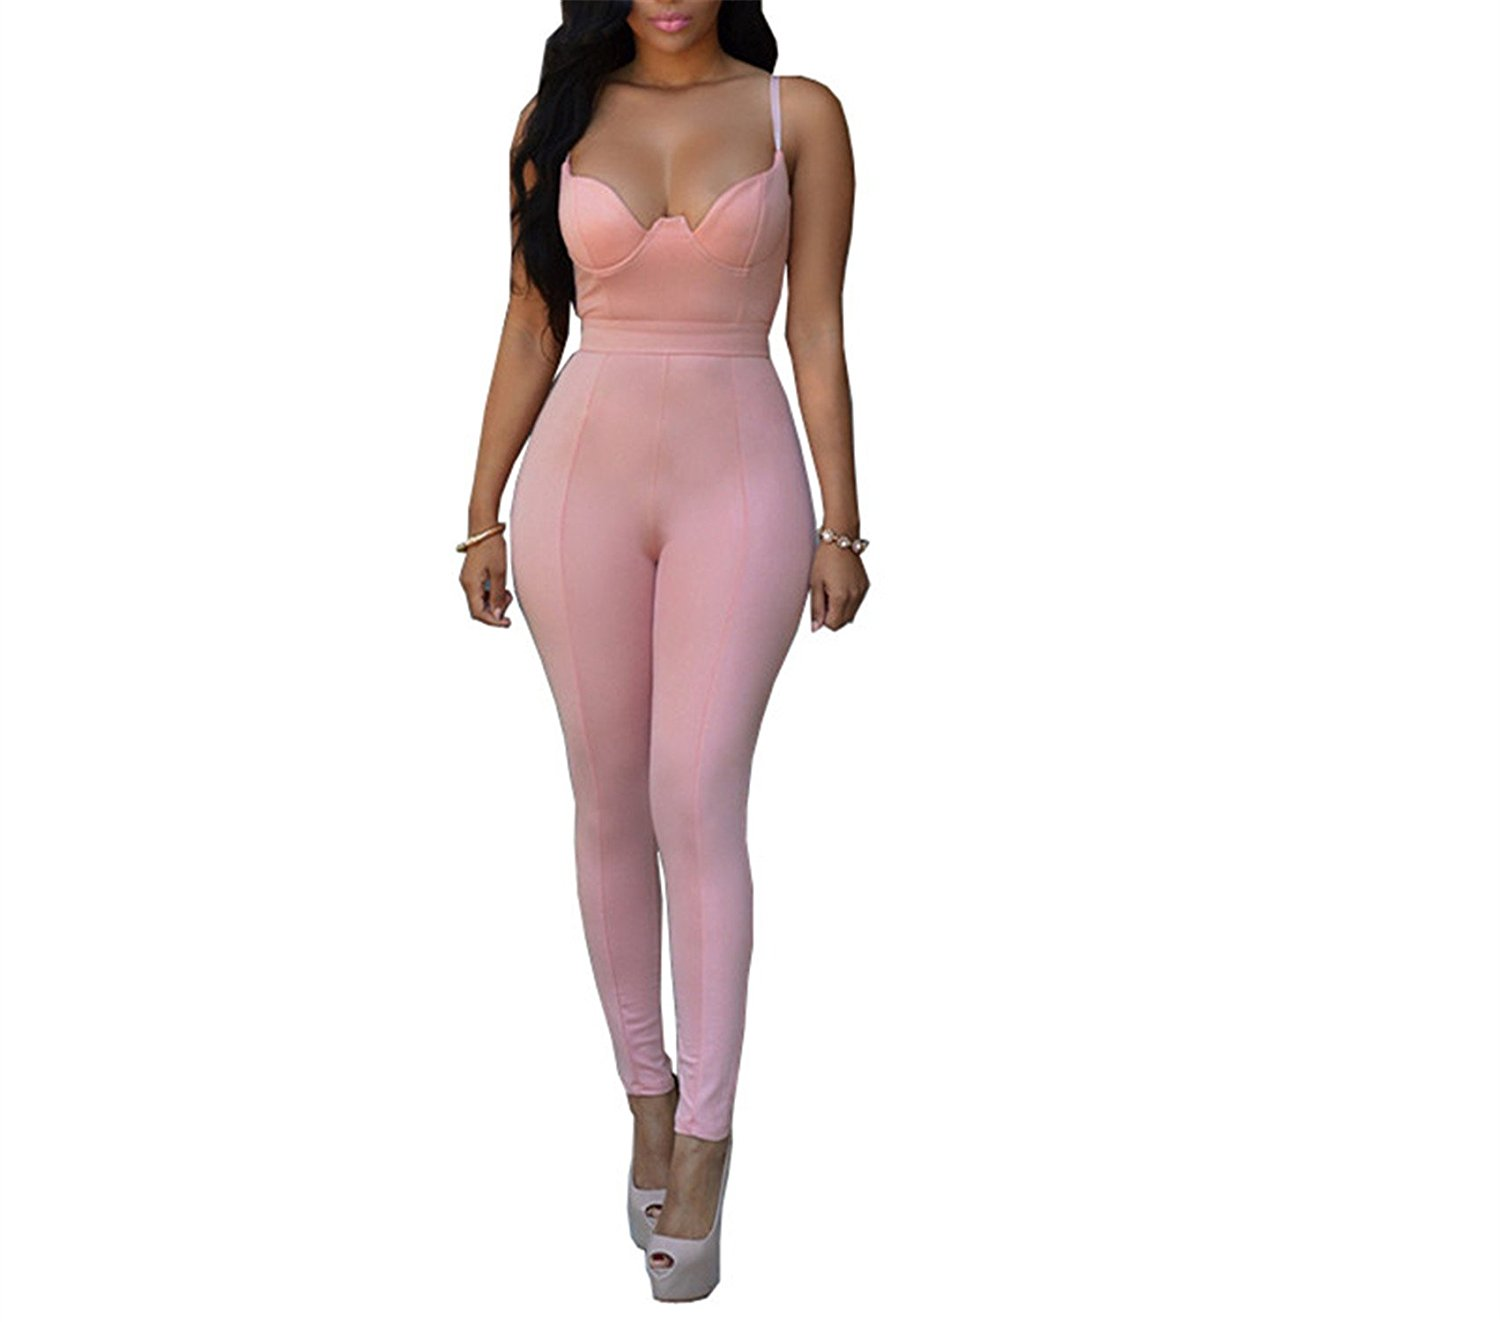 40413f9c7d5 Get Quotations · Soto6ro Women Backless Bandage Sexy Jumpsuit Latex Smooth  Wetlook Tight-Fitting Cute Faux Leather Jumpsuit